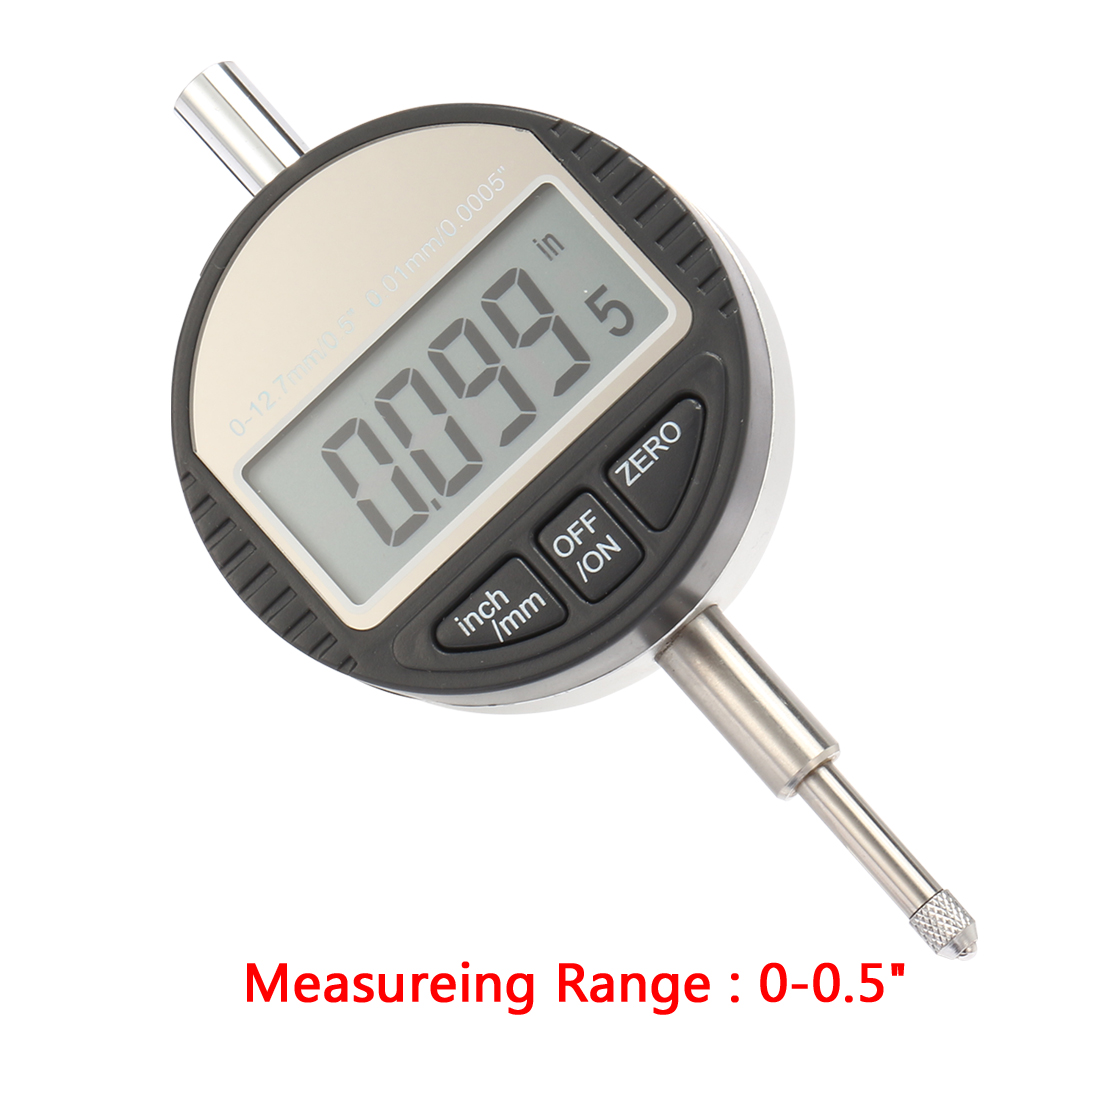 Electronic Digital Indicator Gage Gauge Inch/Metric Conversion 0-0.5 Inch/12.7 mm with Back Lug